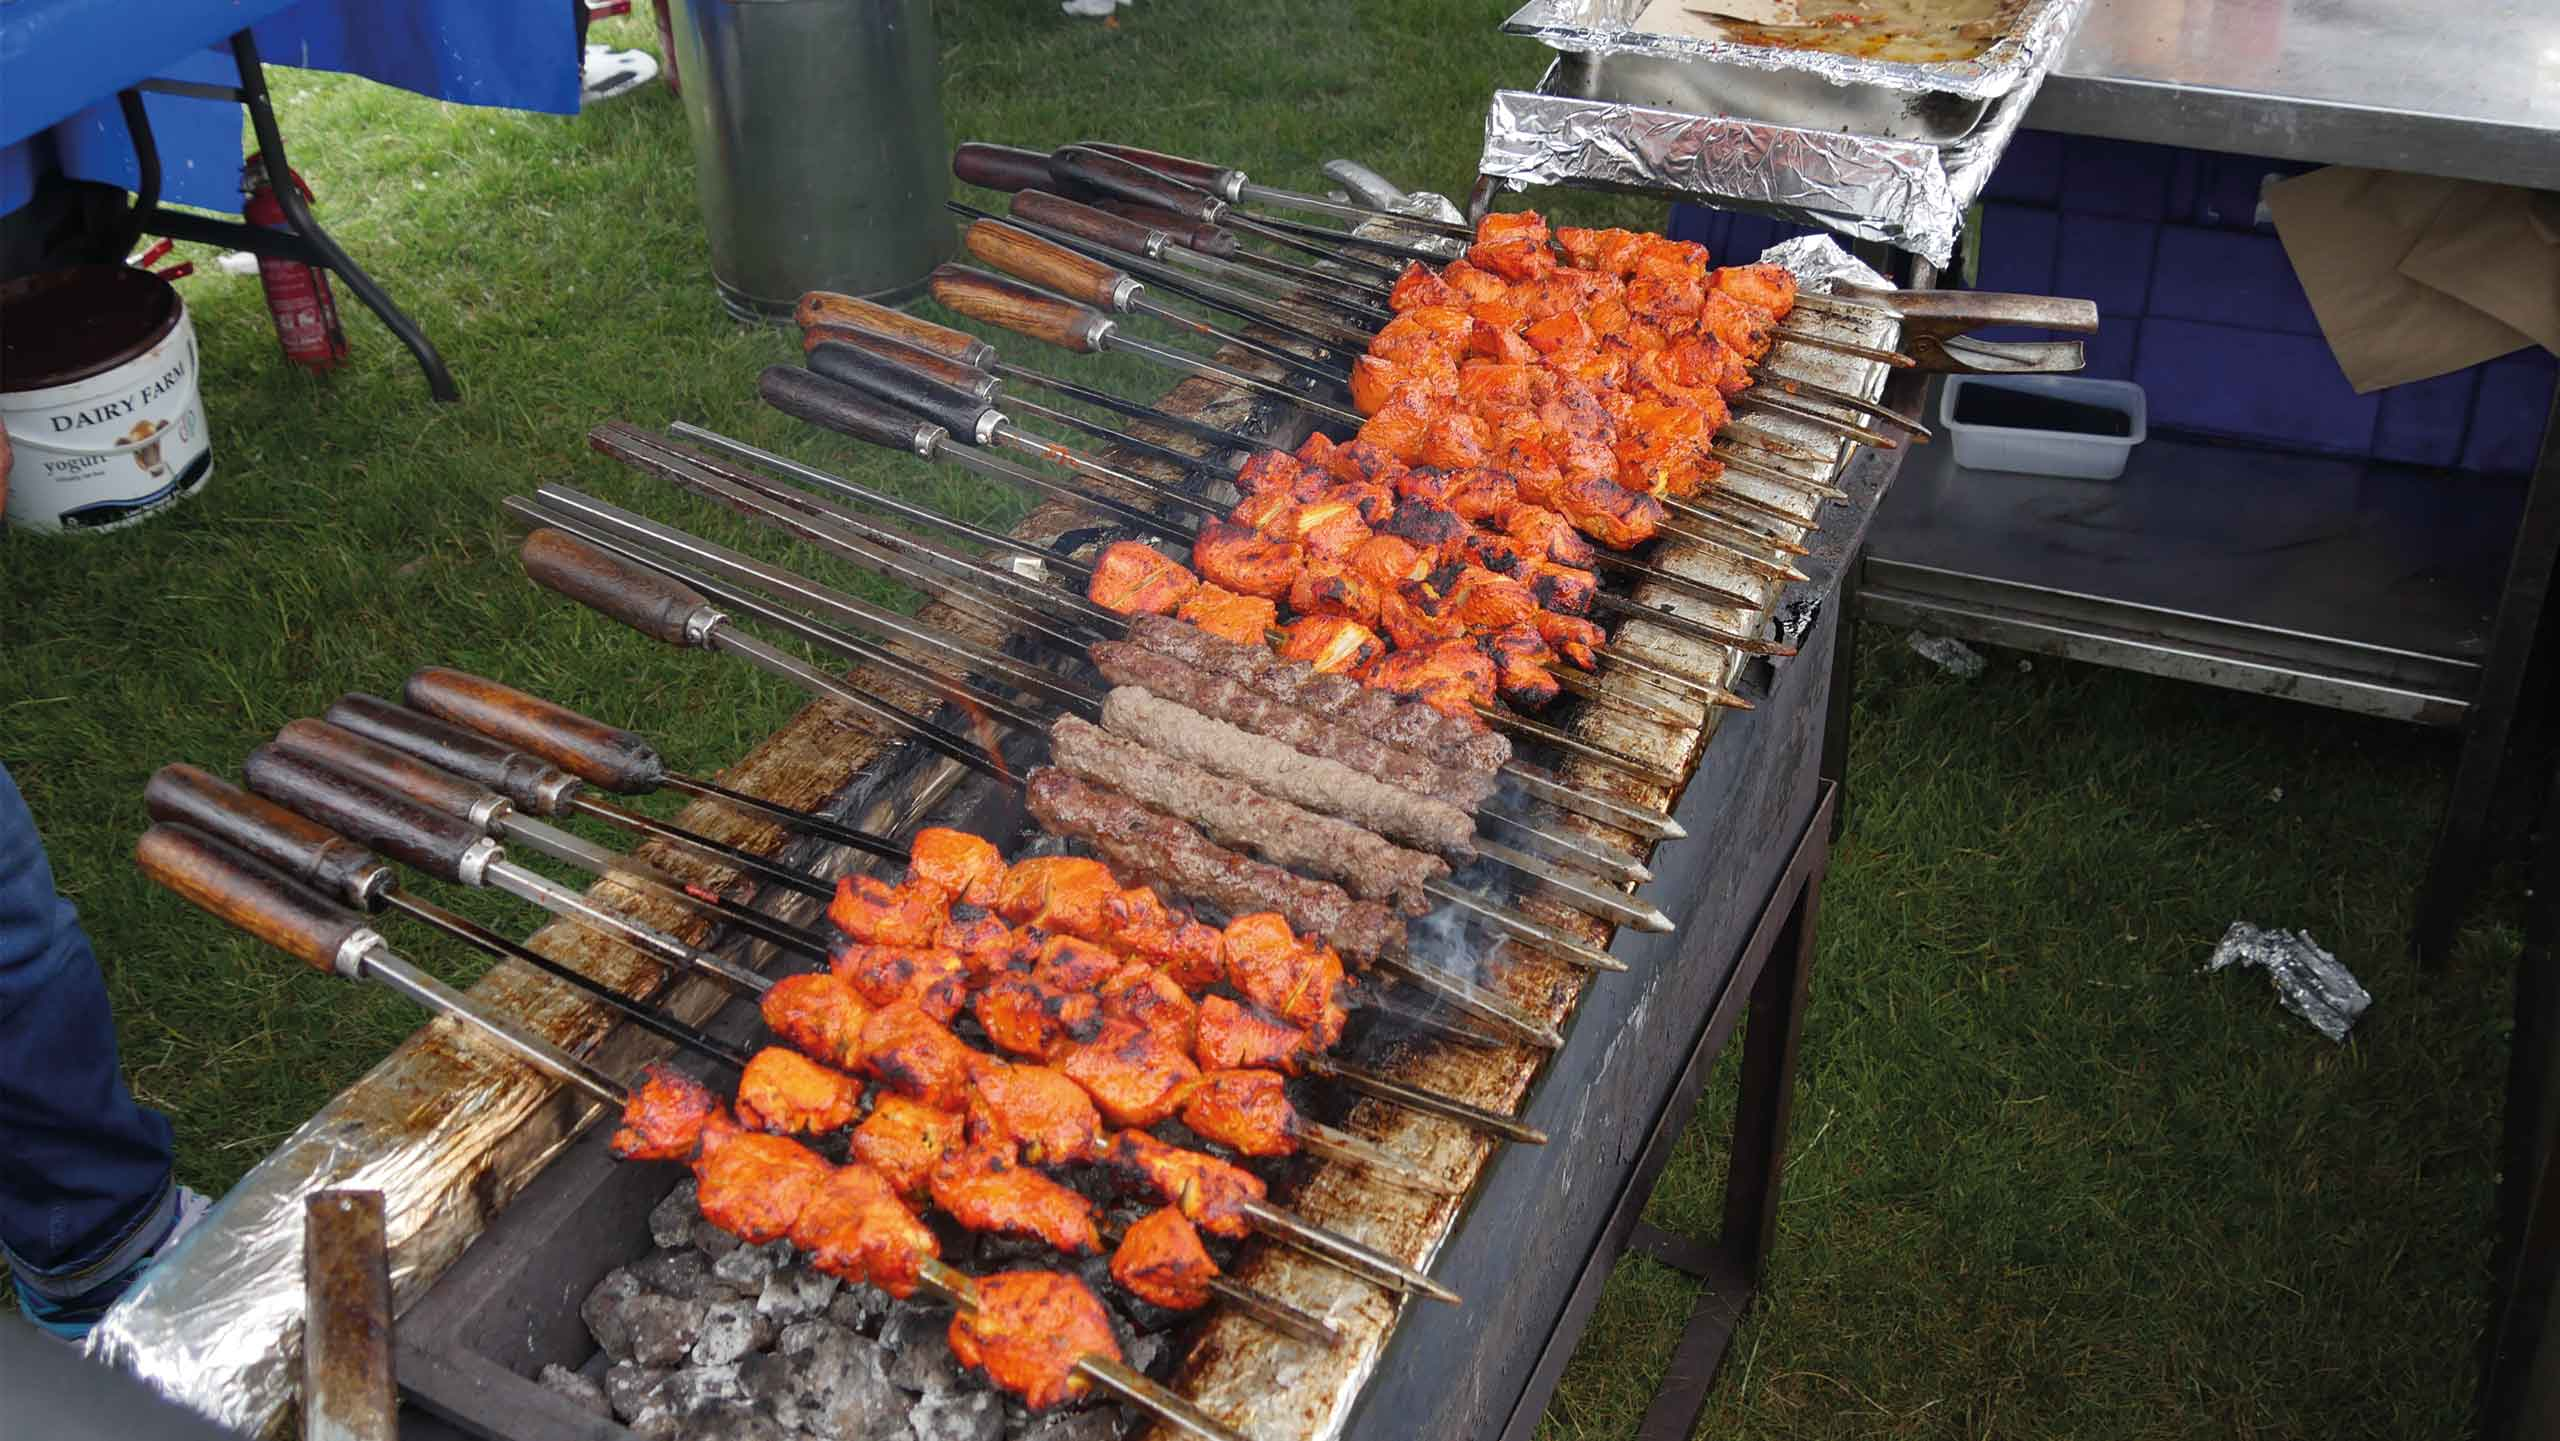 photo ob chicken and lamb kebbabs on bbq grill at Inspire Eid event